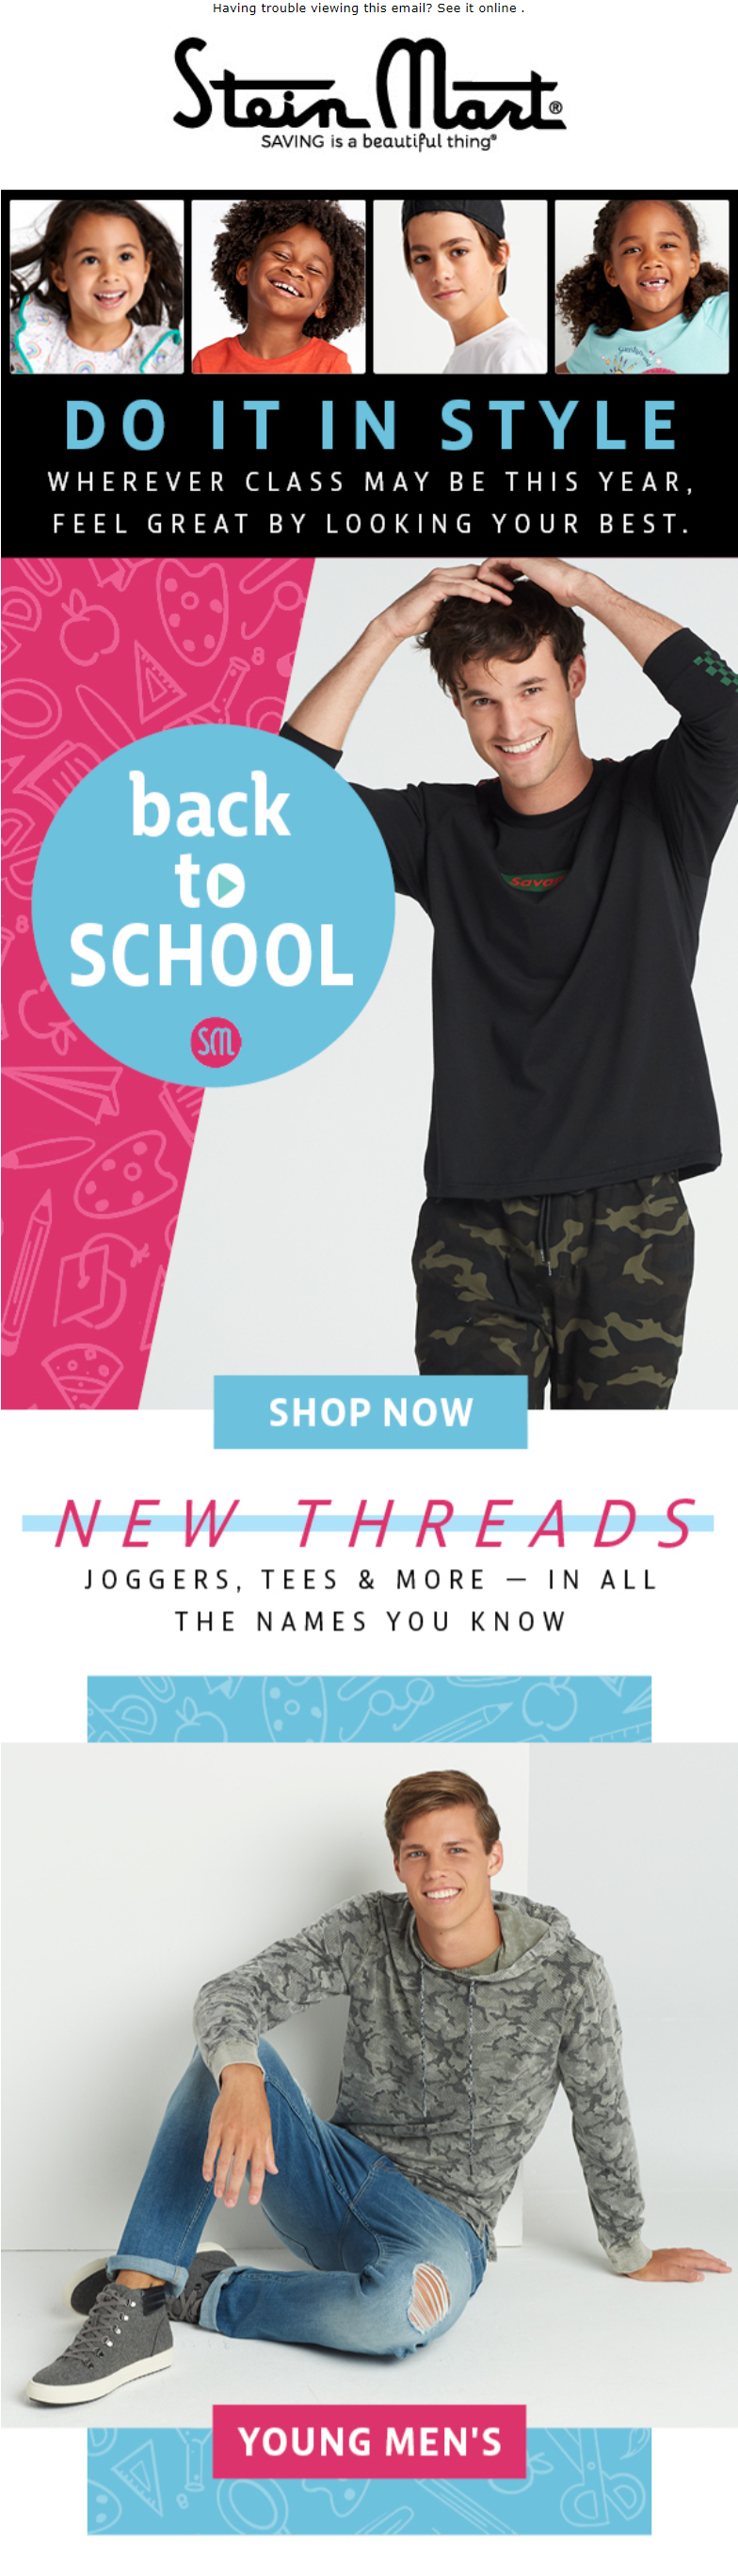 back-to-school-and-comfy-cool